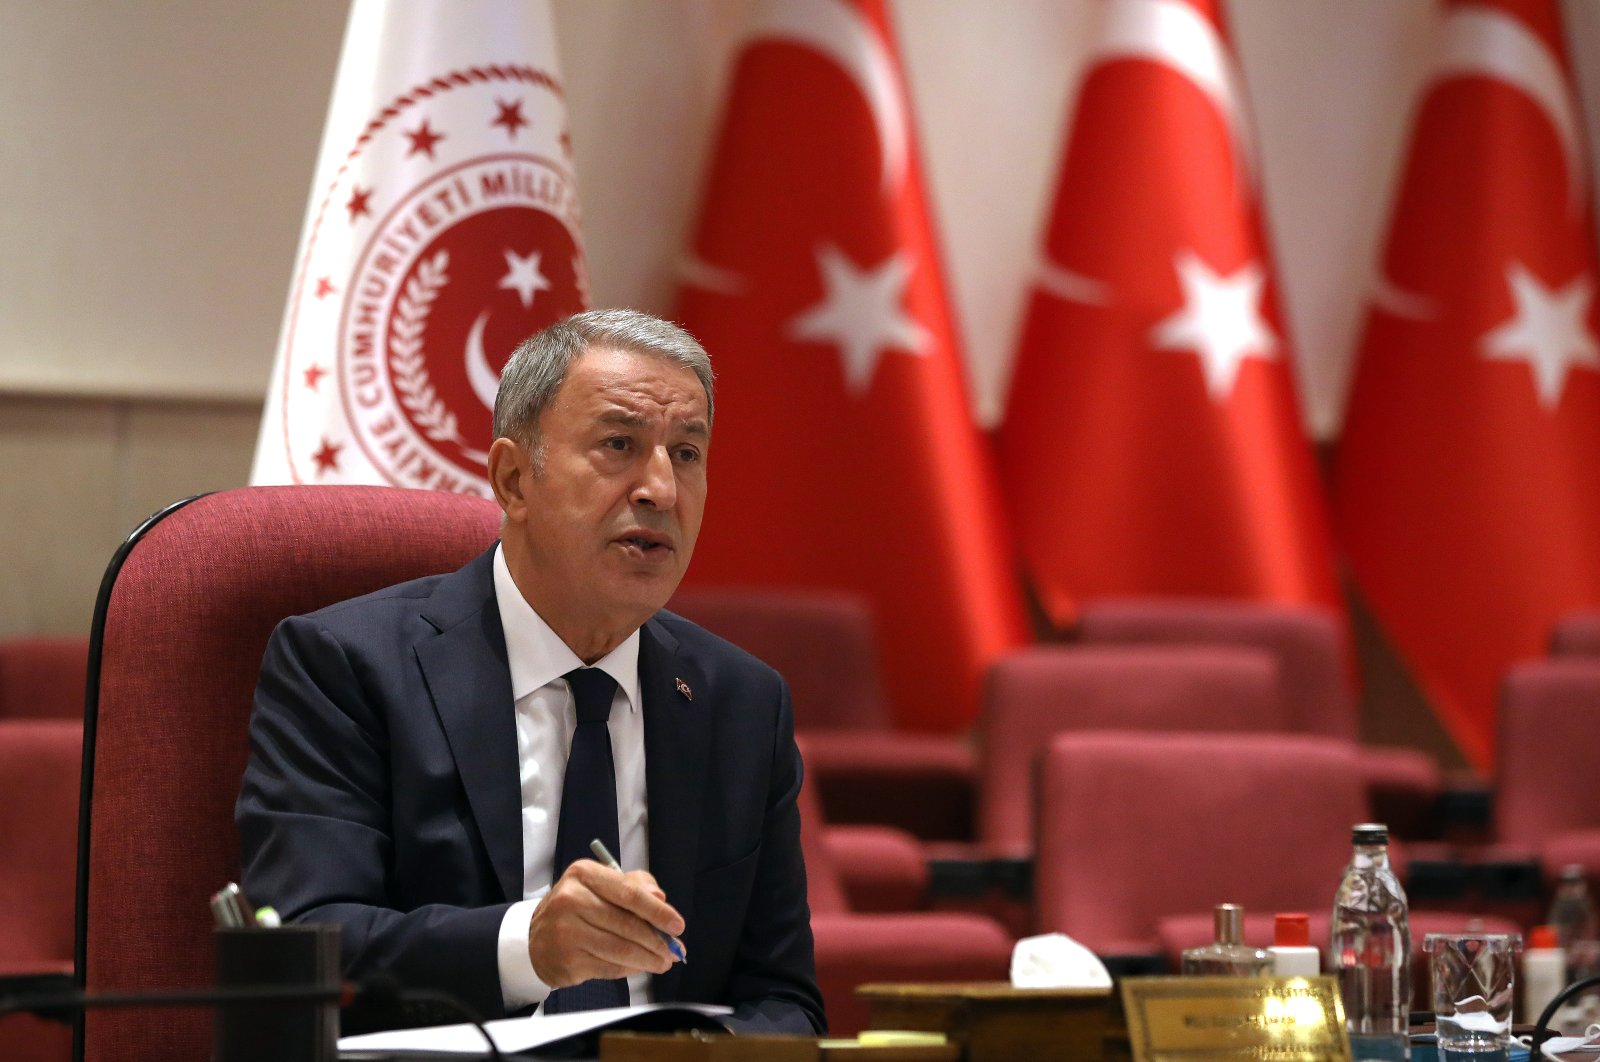 Defense Minister Hulusi Akar presiding over a military conference on the recent developments in Afghanistan in Ankara, Turkey, Aug. 23, 2021. (AA Photo)